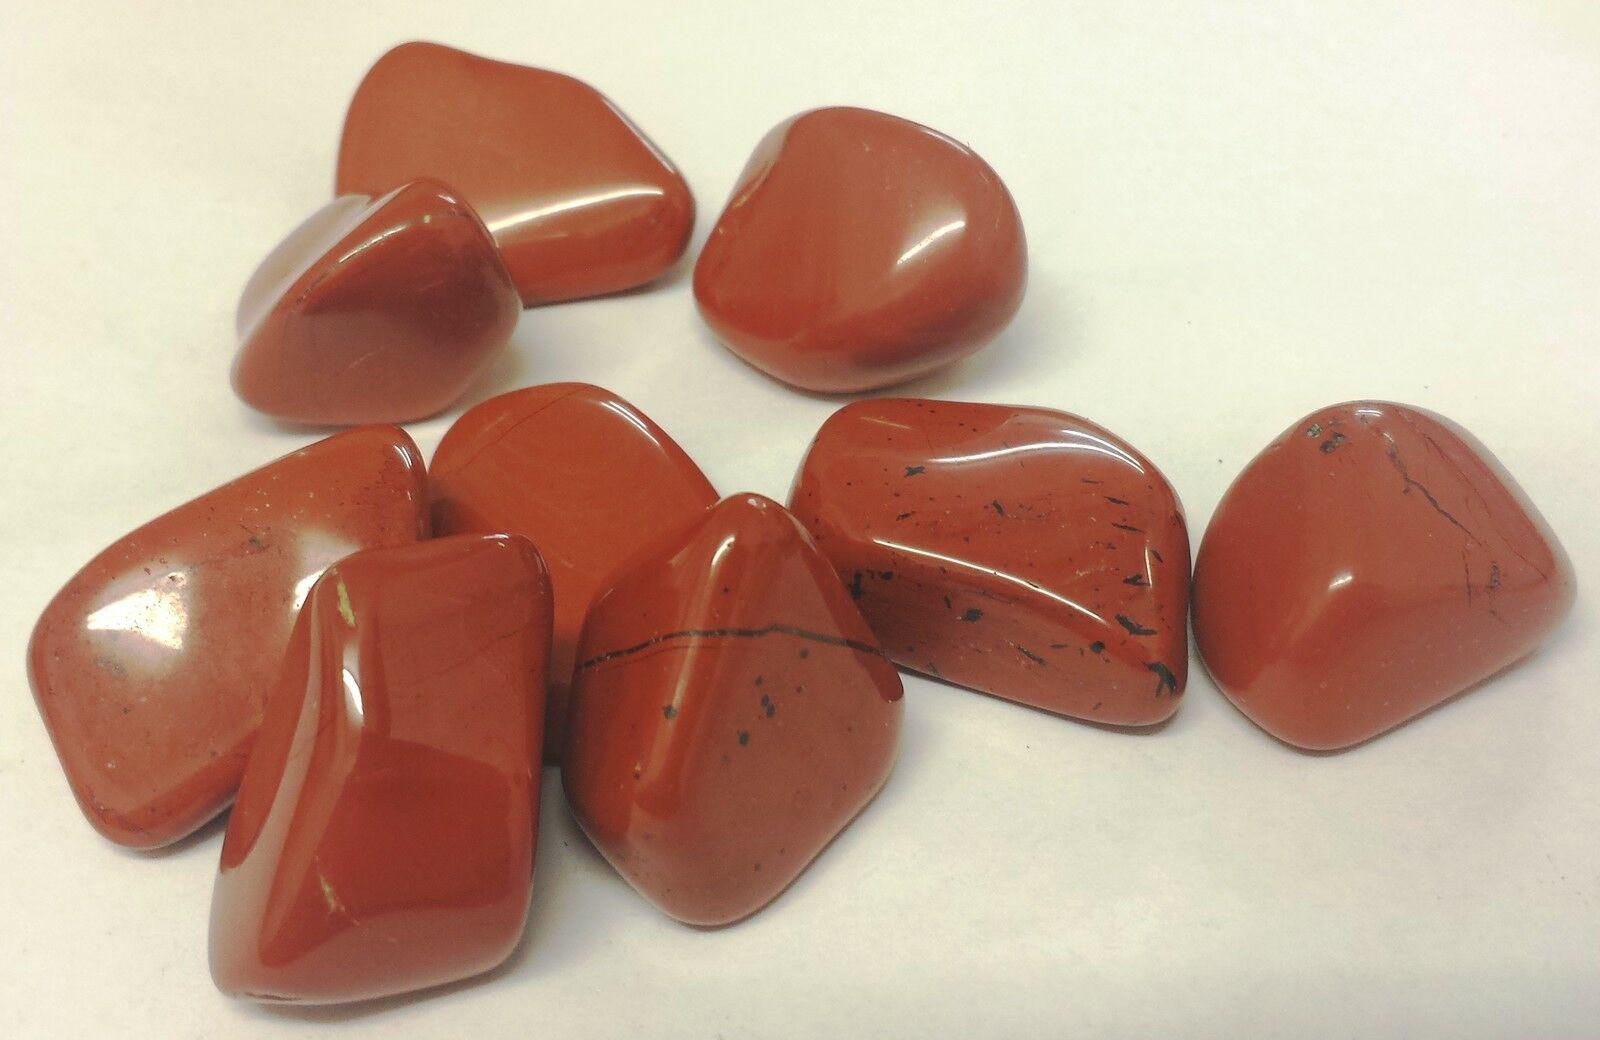 3 x BEAUTIFUL RED JASPER TUMBLESTONES - REIKI MEDITATION